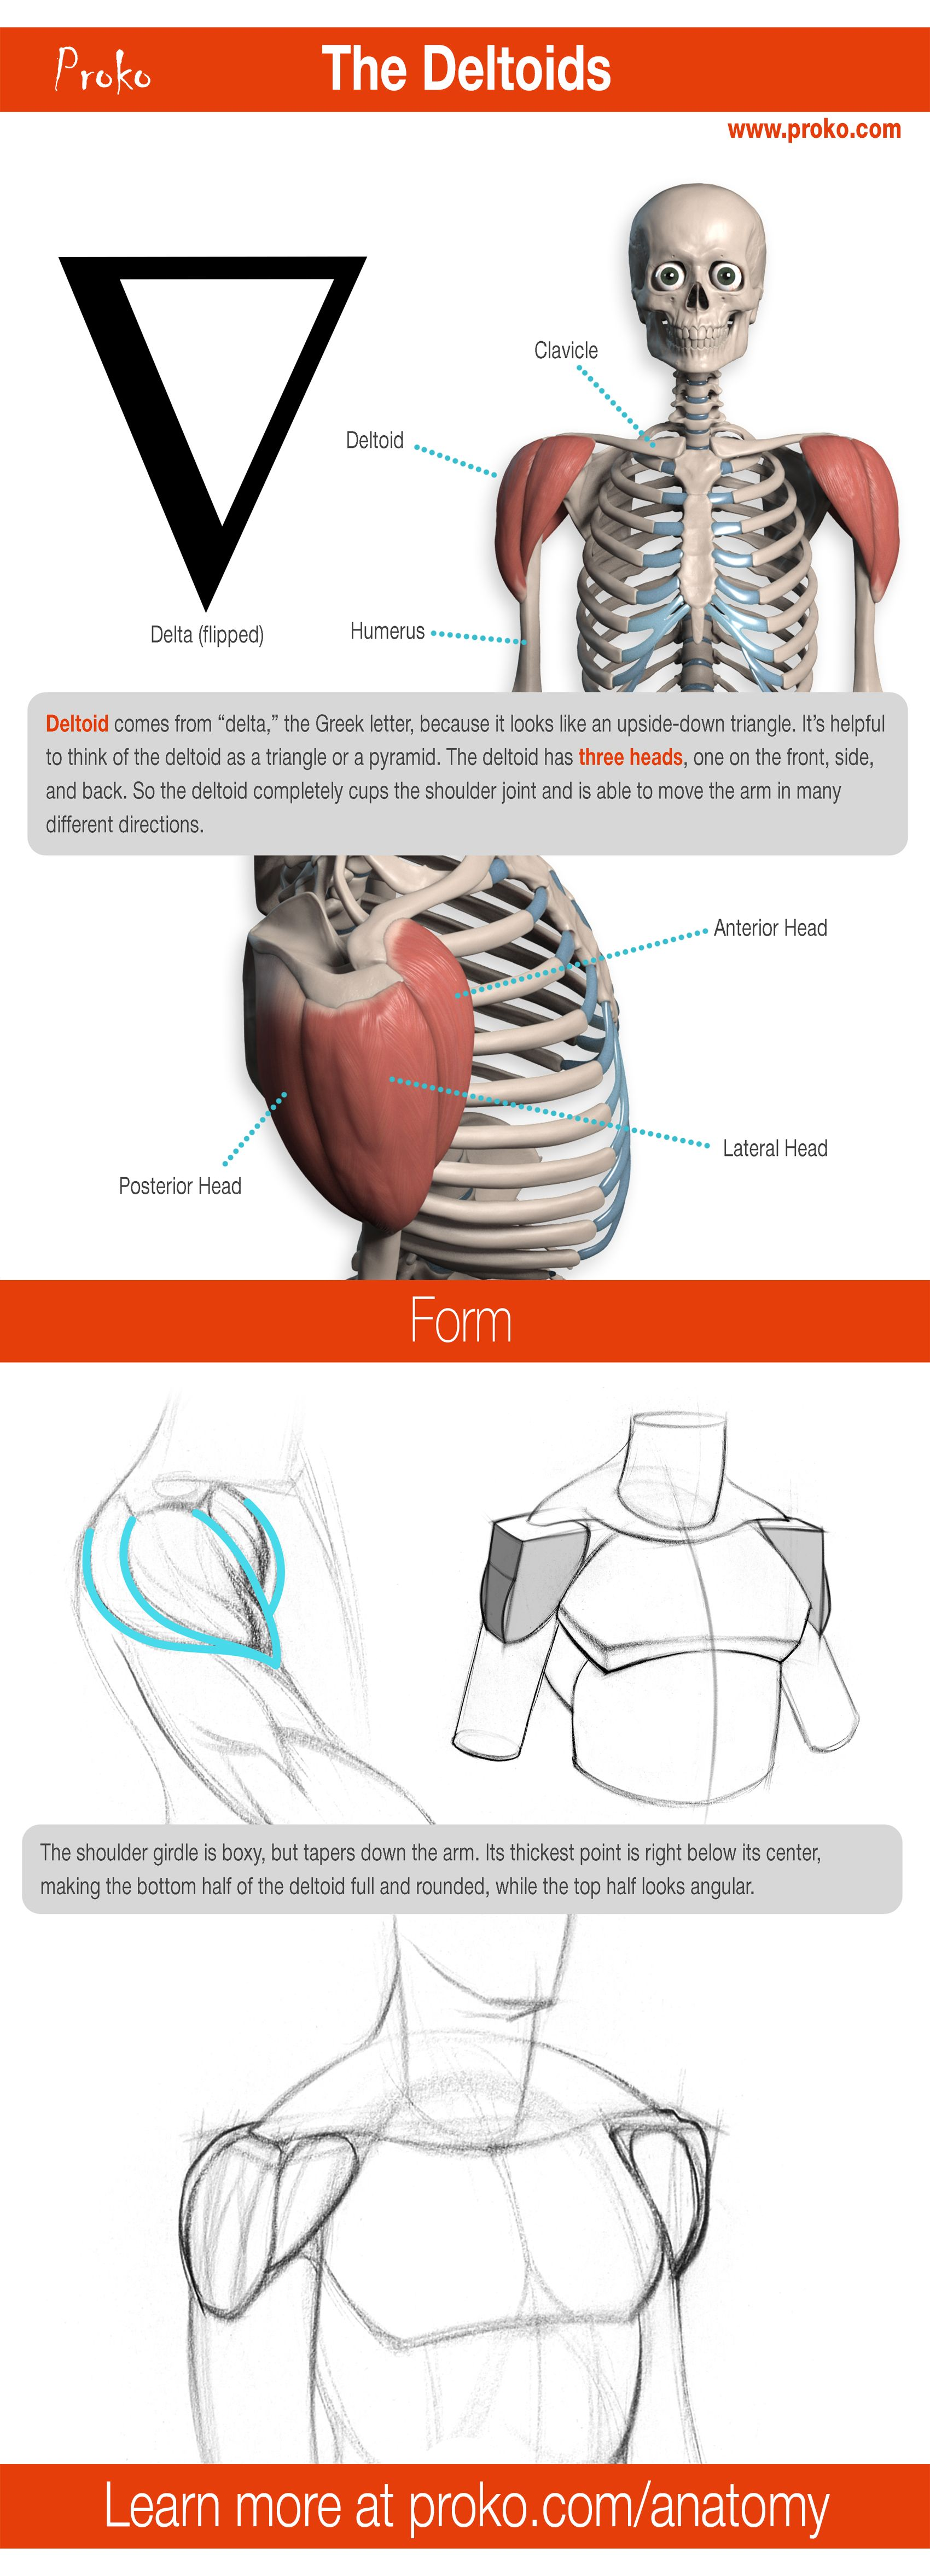 Learn how to draw the deltoids! More anatomy drawing lessons at proko.com/anatomy